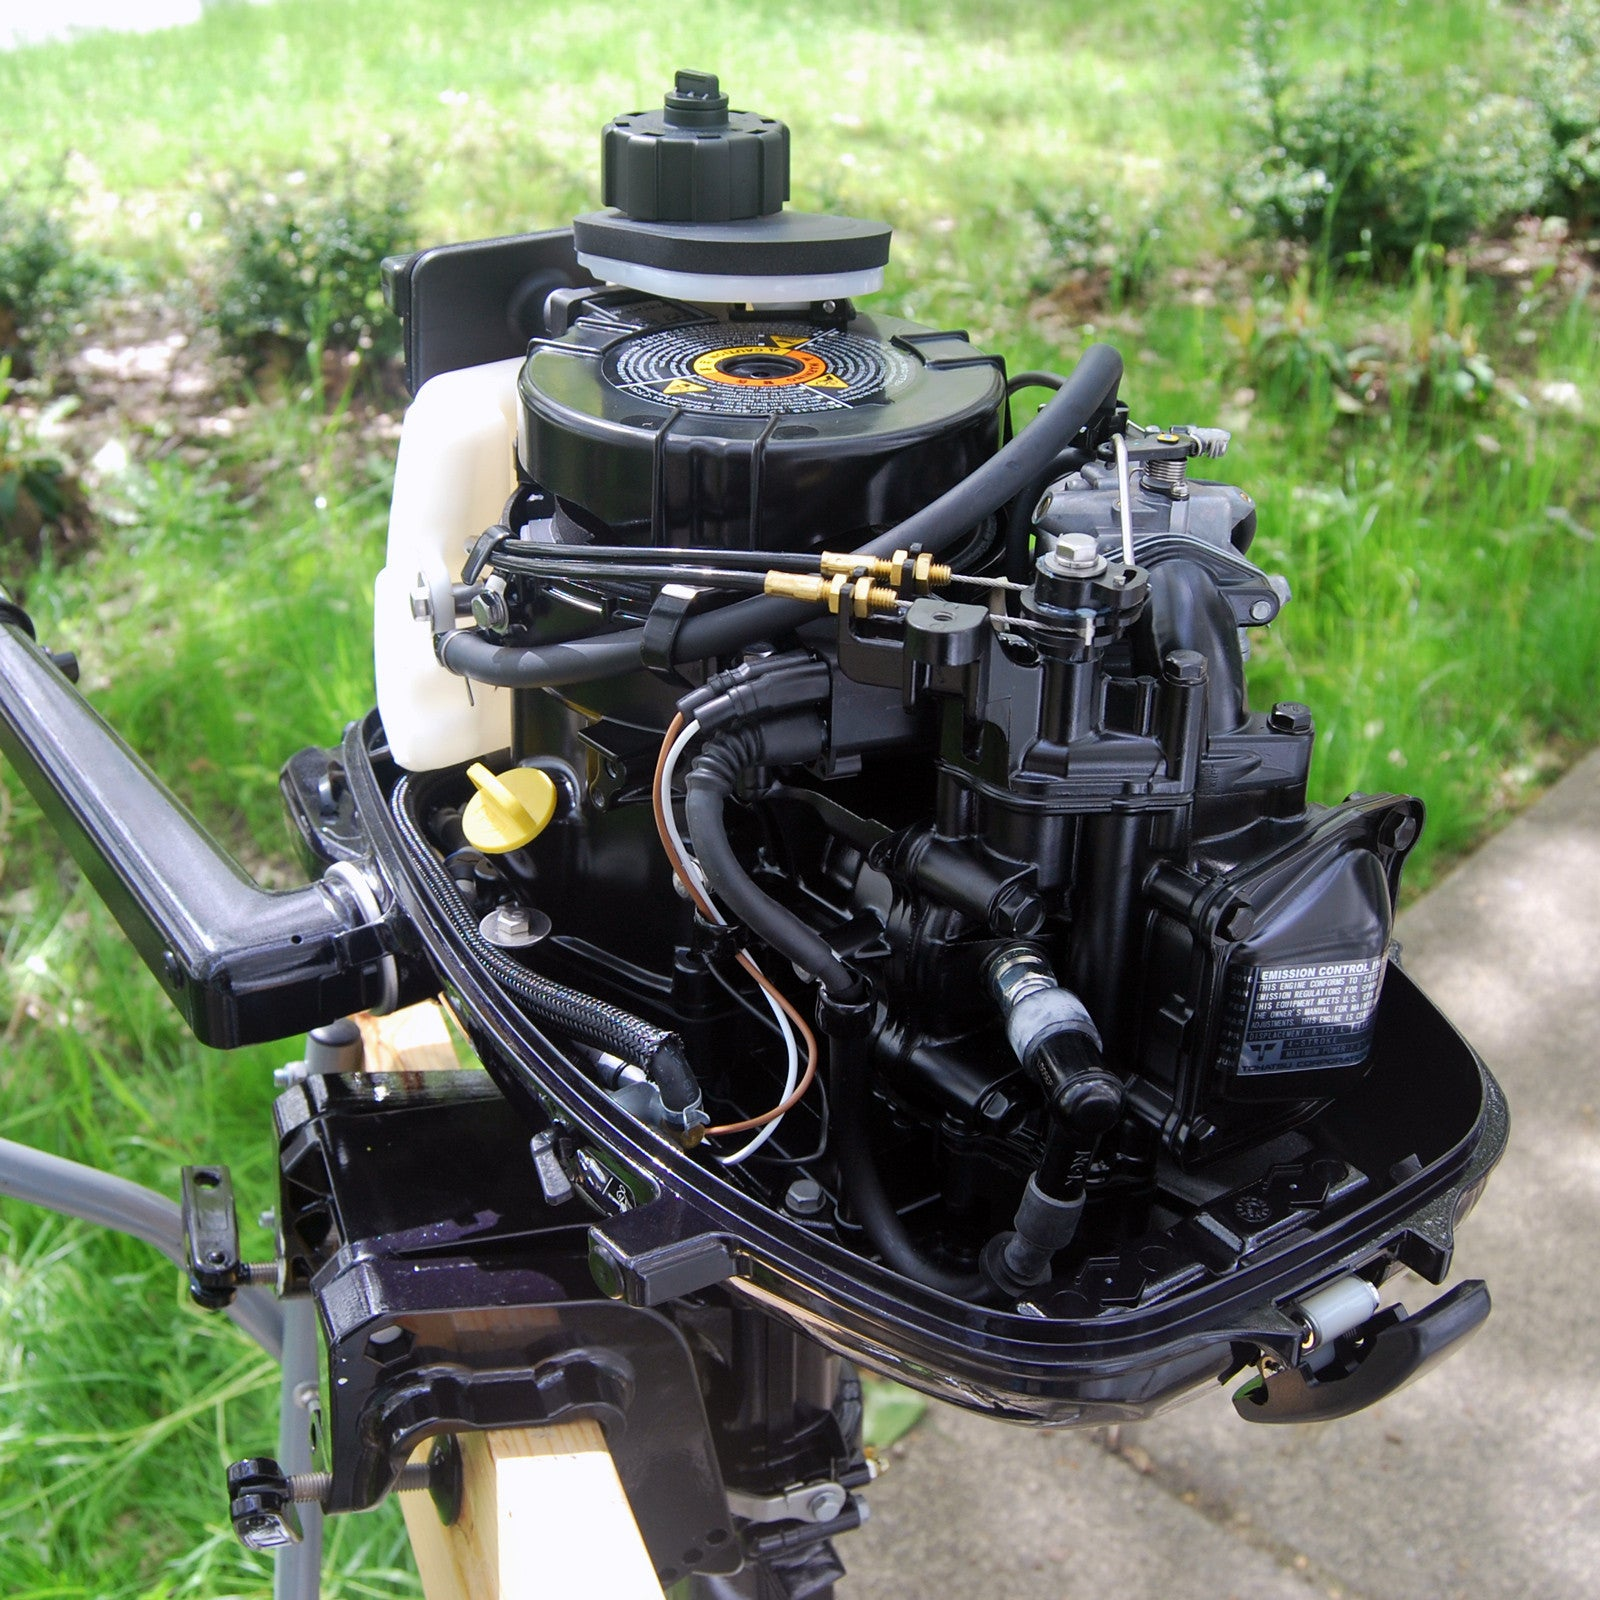 Tohatsu 4-Stroke 6HP Outboard Motor, Tiller Handle, New in the box - Seamax  Marine